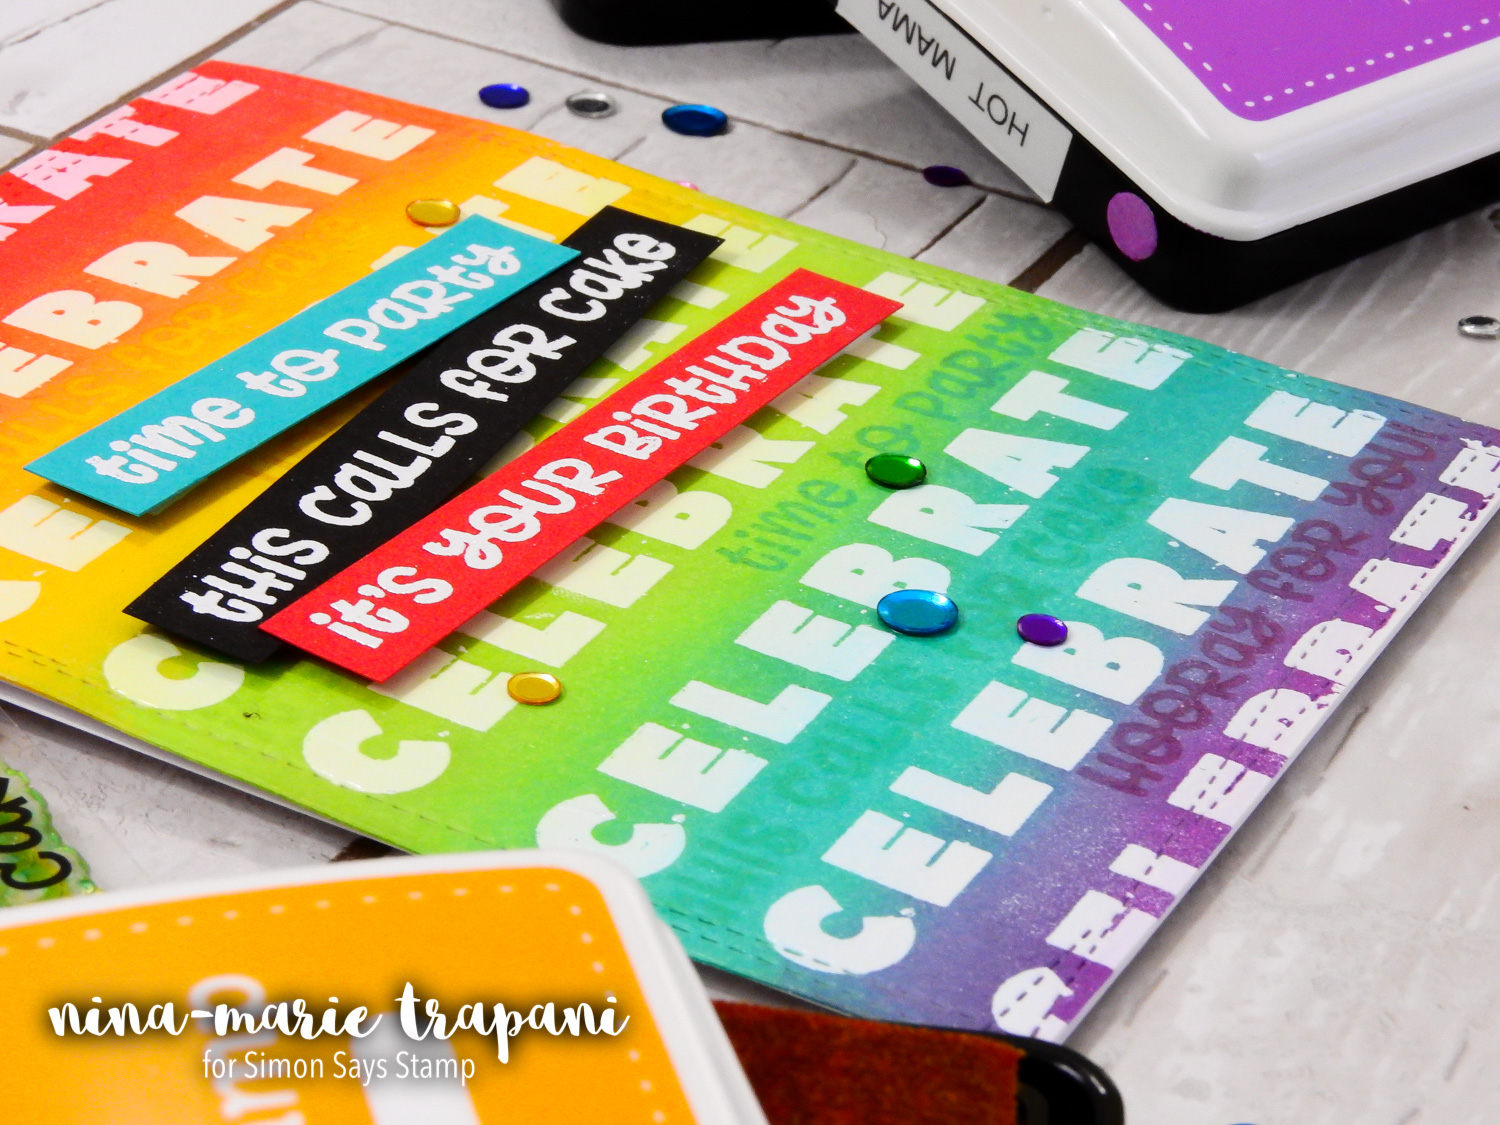 Emboss Resist + Tone on Tone Stamping + Simon's Reverse Confetti STAMPtember Exclusive | Nina-Marie Design